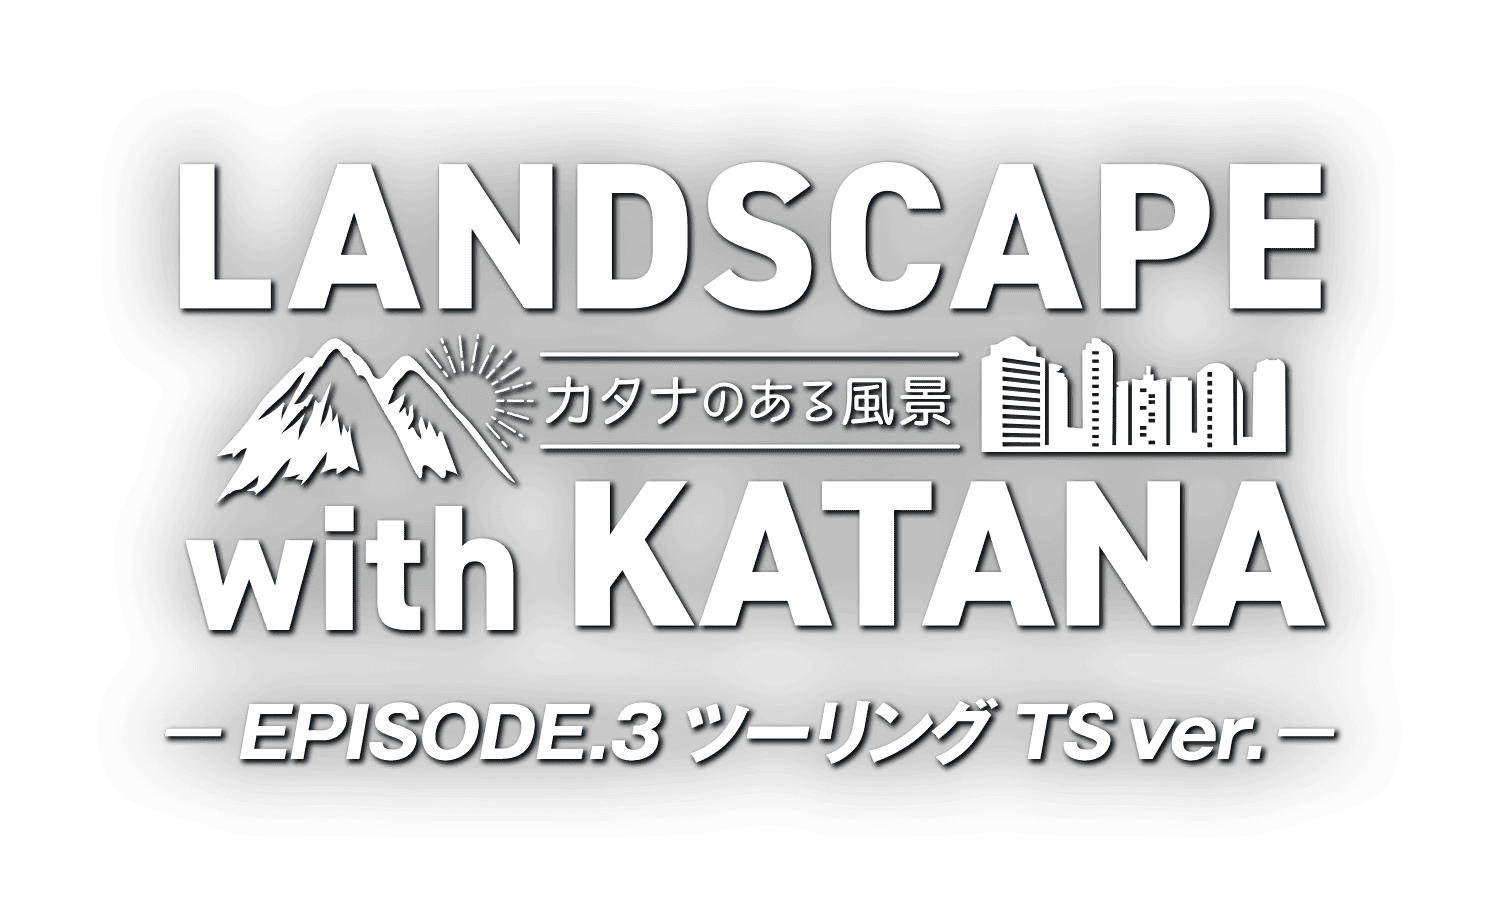 LANDSCAPE with KATANA 〜カタナのある風景〜 EPISODE.3 ツーリング TS ver.